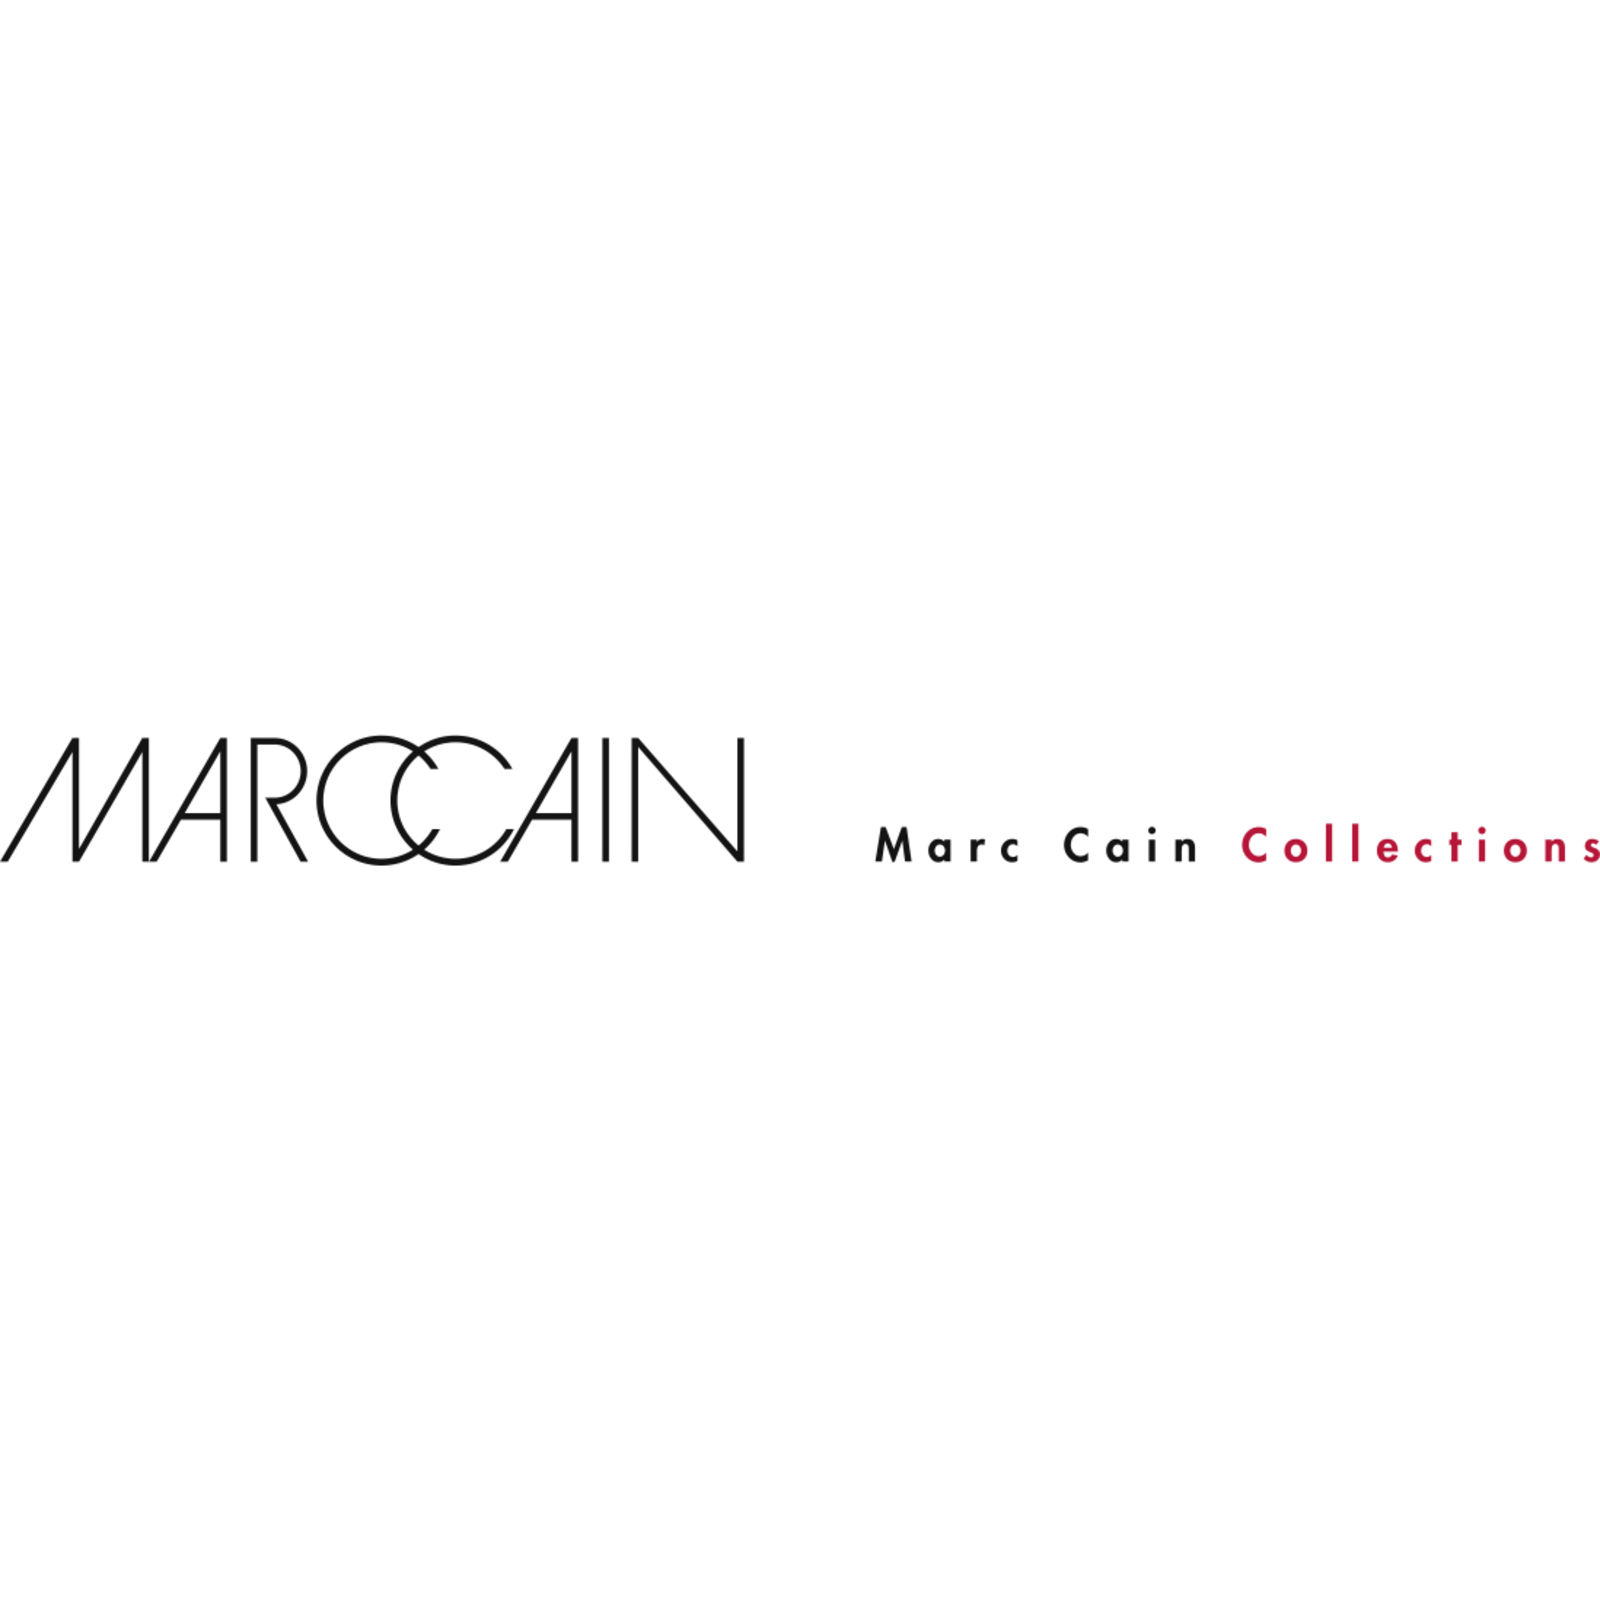 MARC CAIN COLLECTIONS (Image 1)